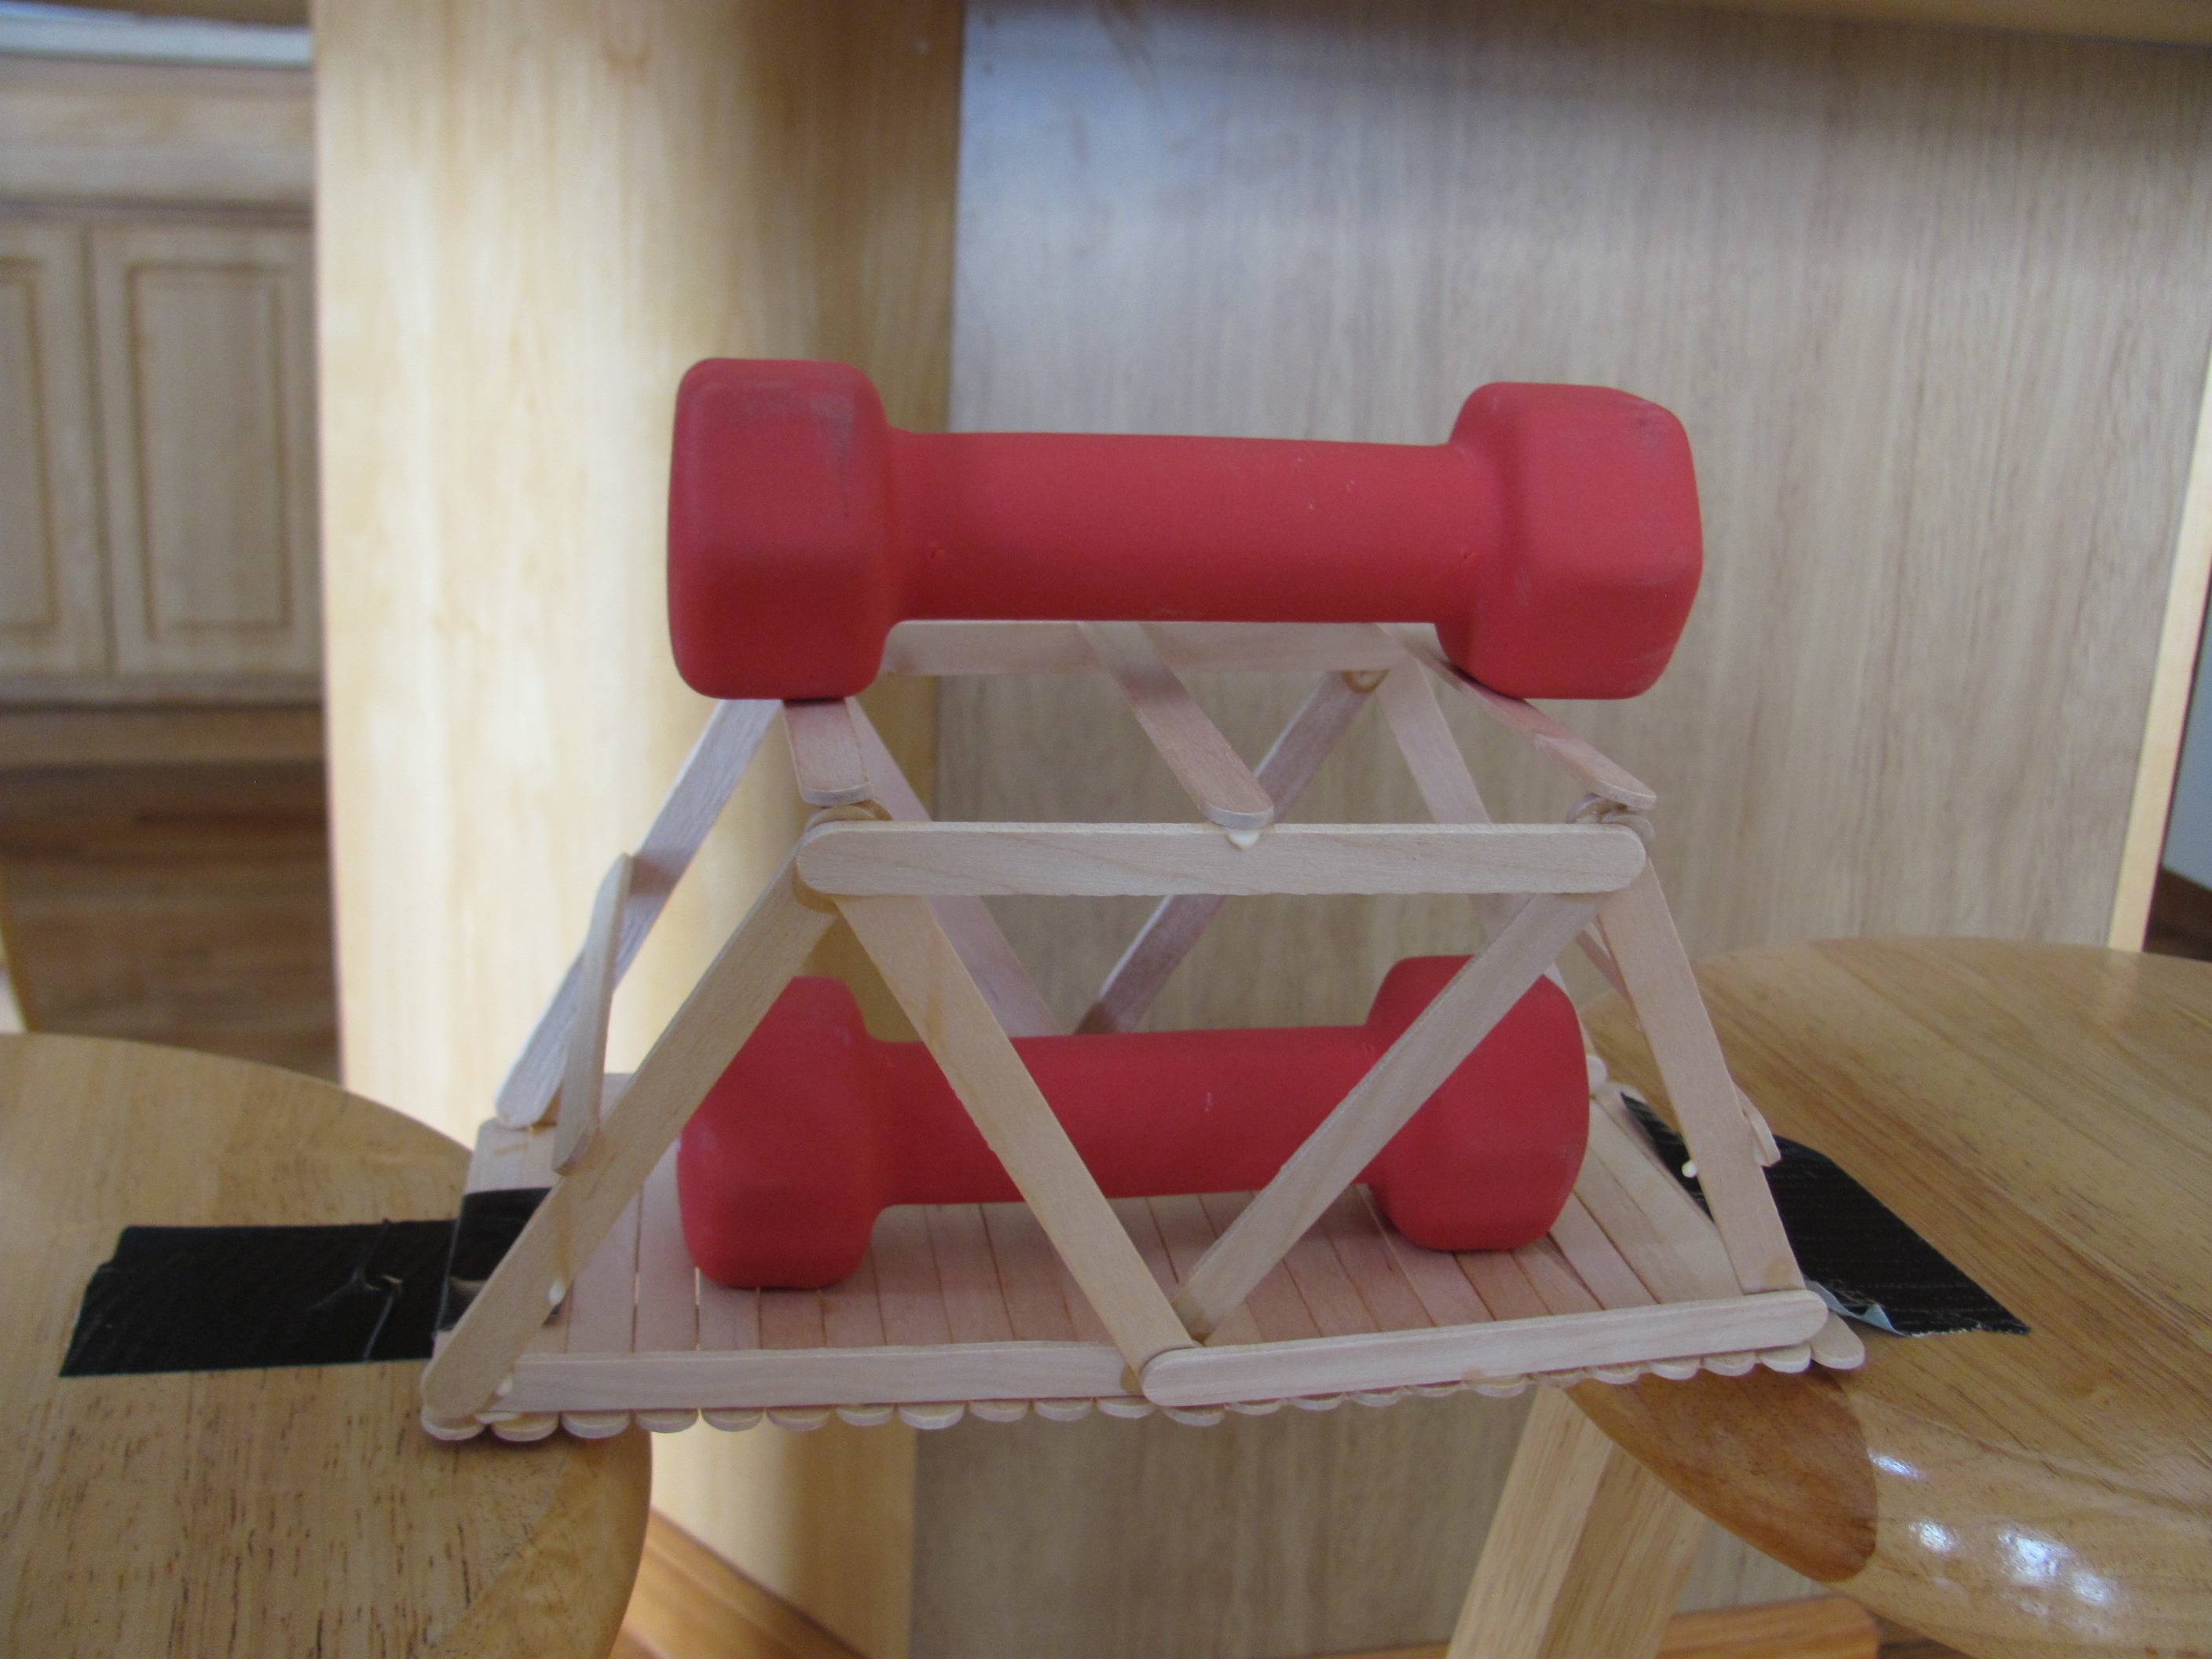 popsicle stick bridge that holds 6+ lbs of weight - DIY